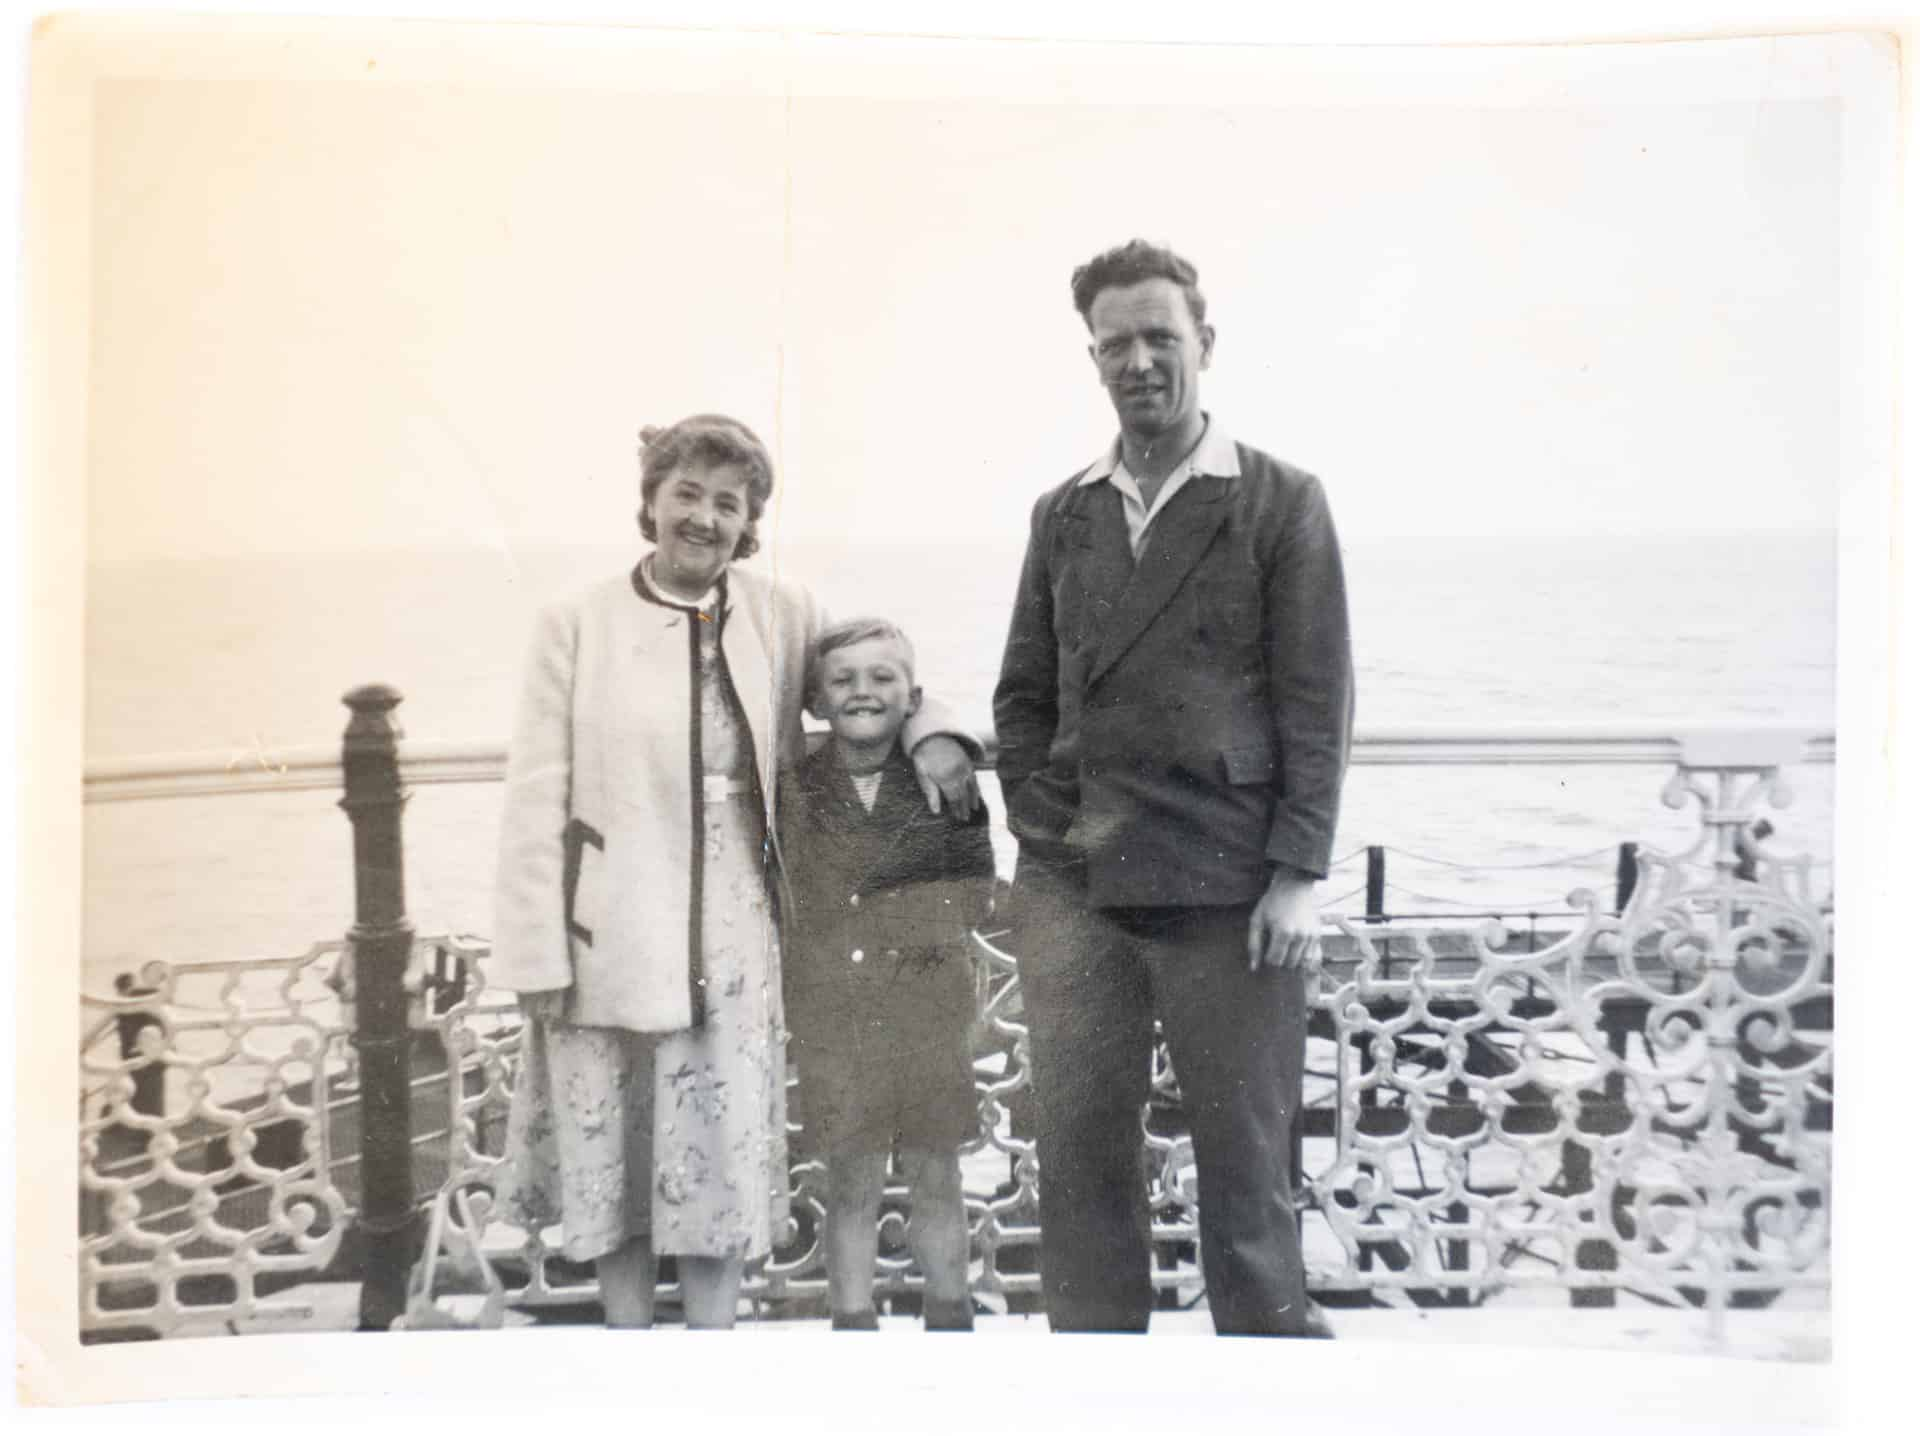 Nan, me and Dad on holiday somewhere in the 1950s